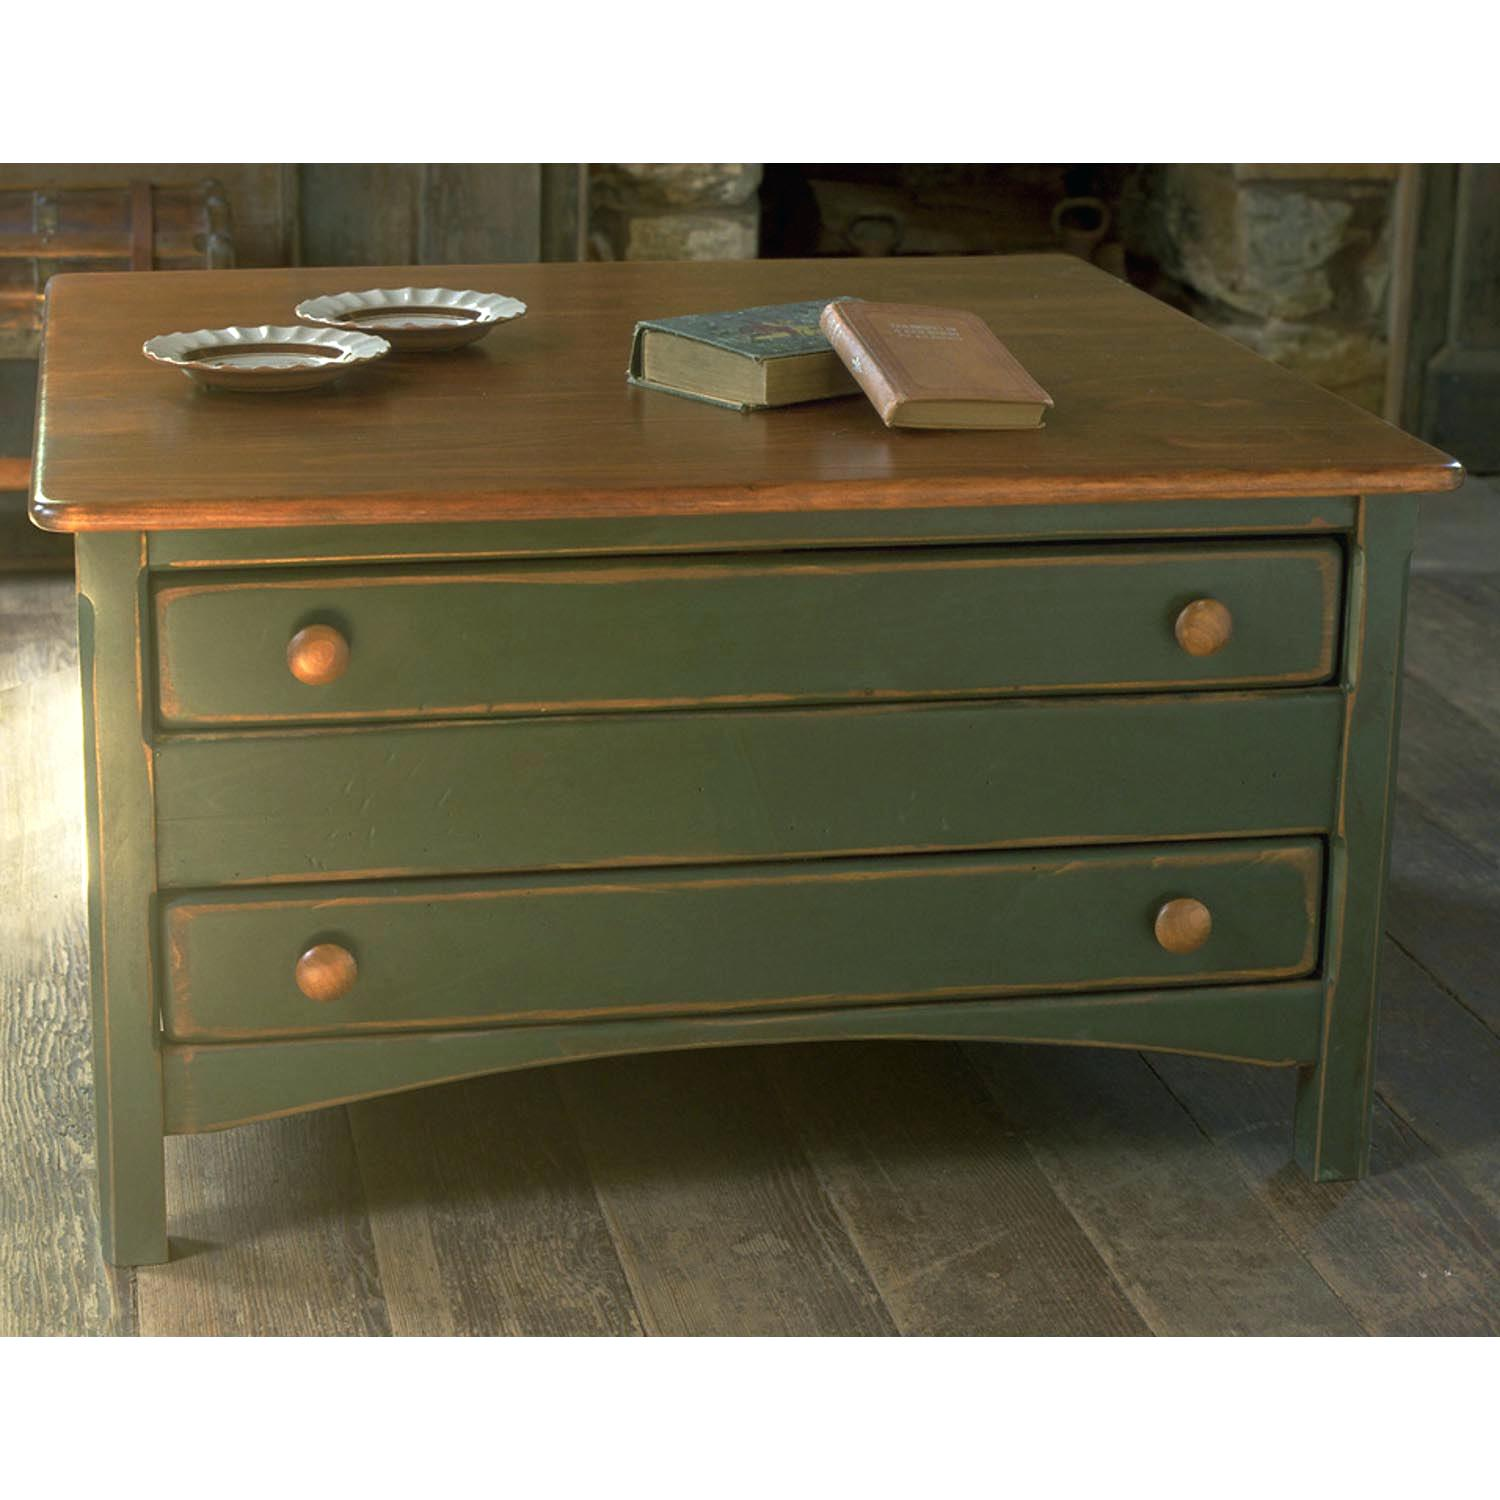 elegant reclaimed drawer coffee table end target killswitch southern pine shaker square drawers lisbon dressing hafley accent wood and wicker nightstand glass furniture bedside